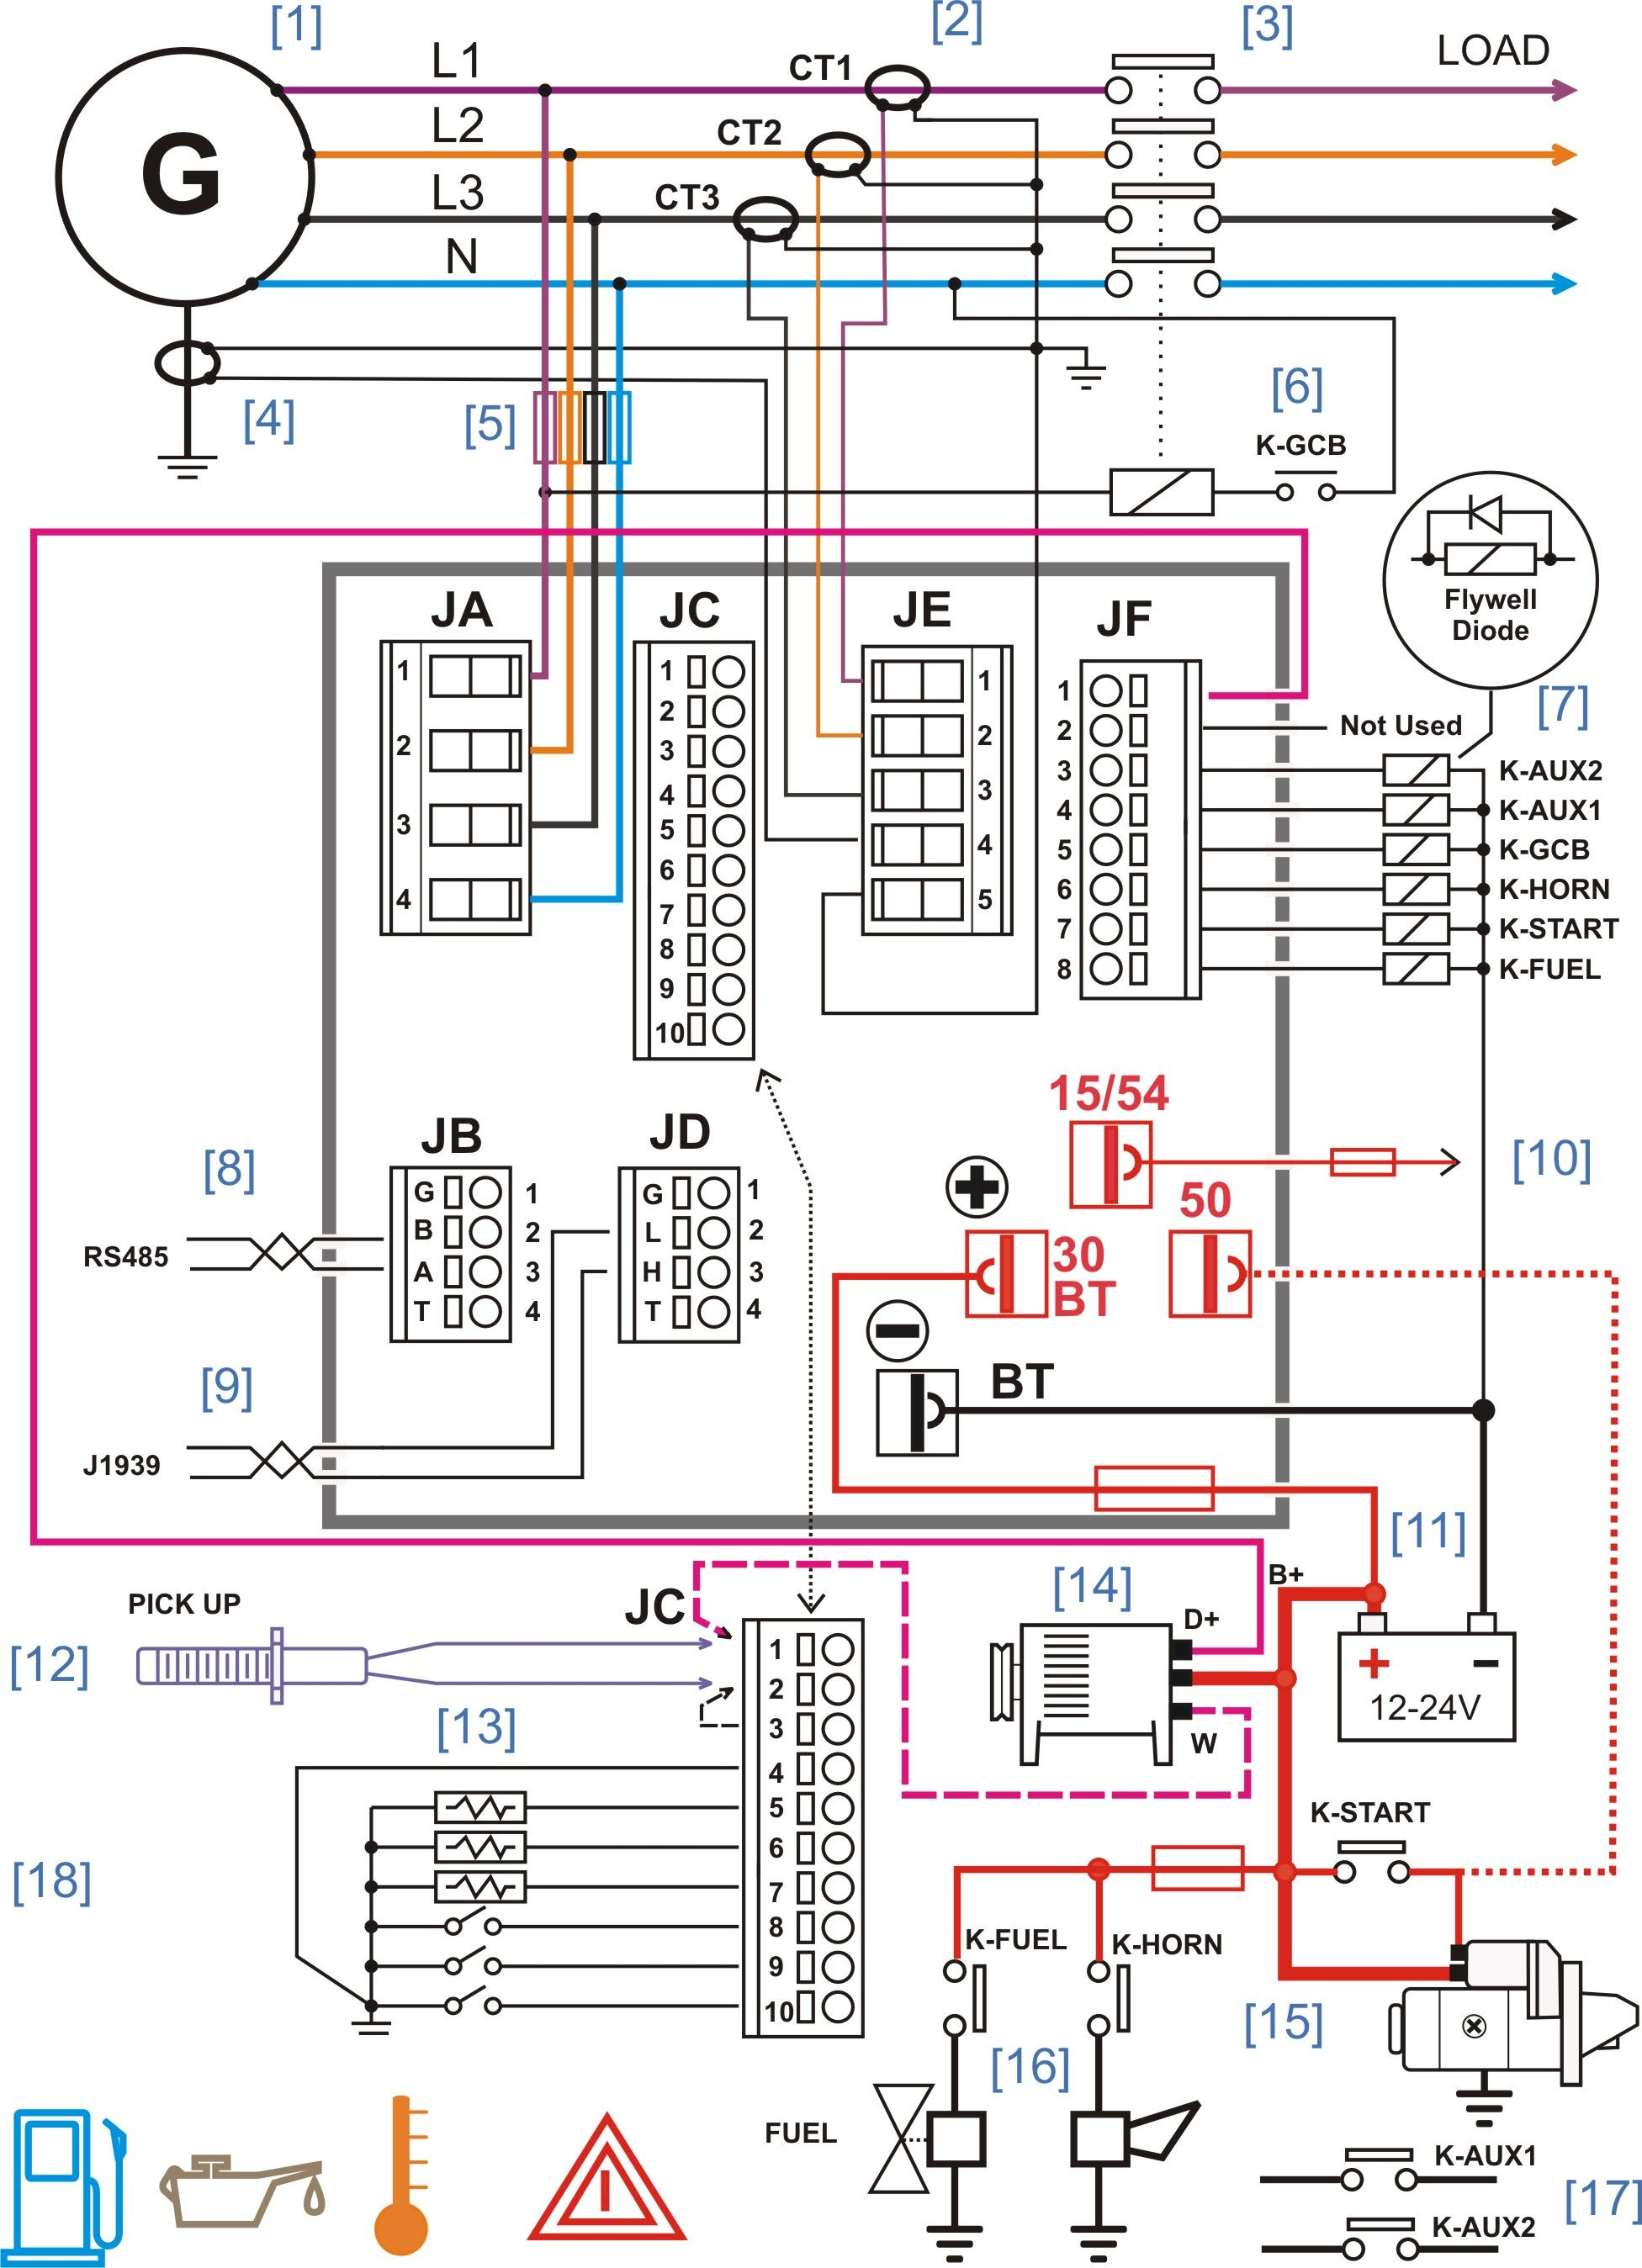 building panel wiring diagram ver wiring diagram different wiring diagrams how to read building wiring diagram wiring diagrams cks valve wiring diagram building panel wiring diagram